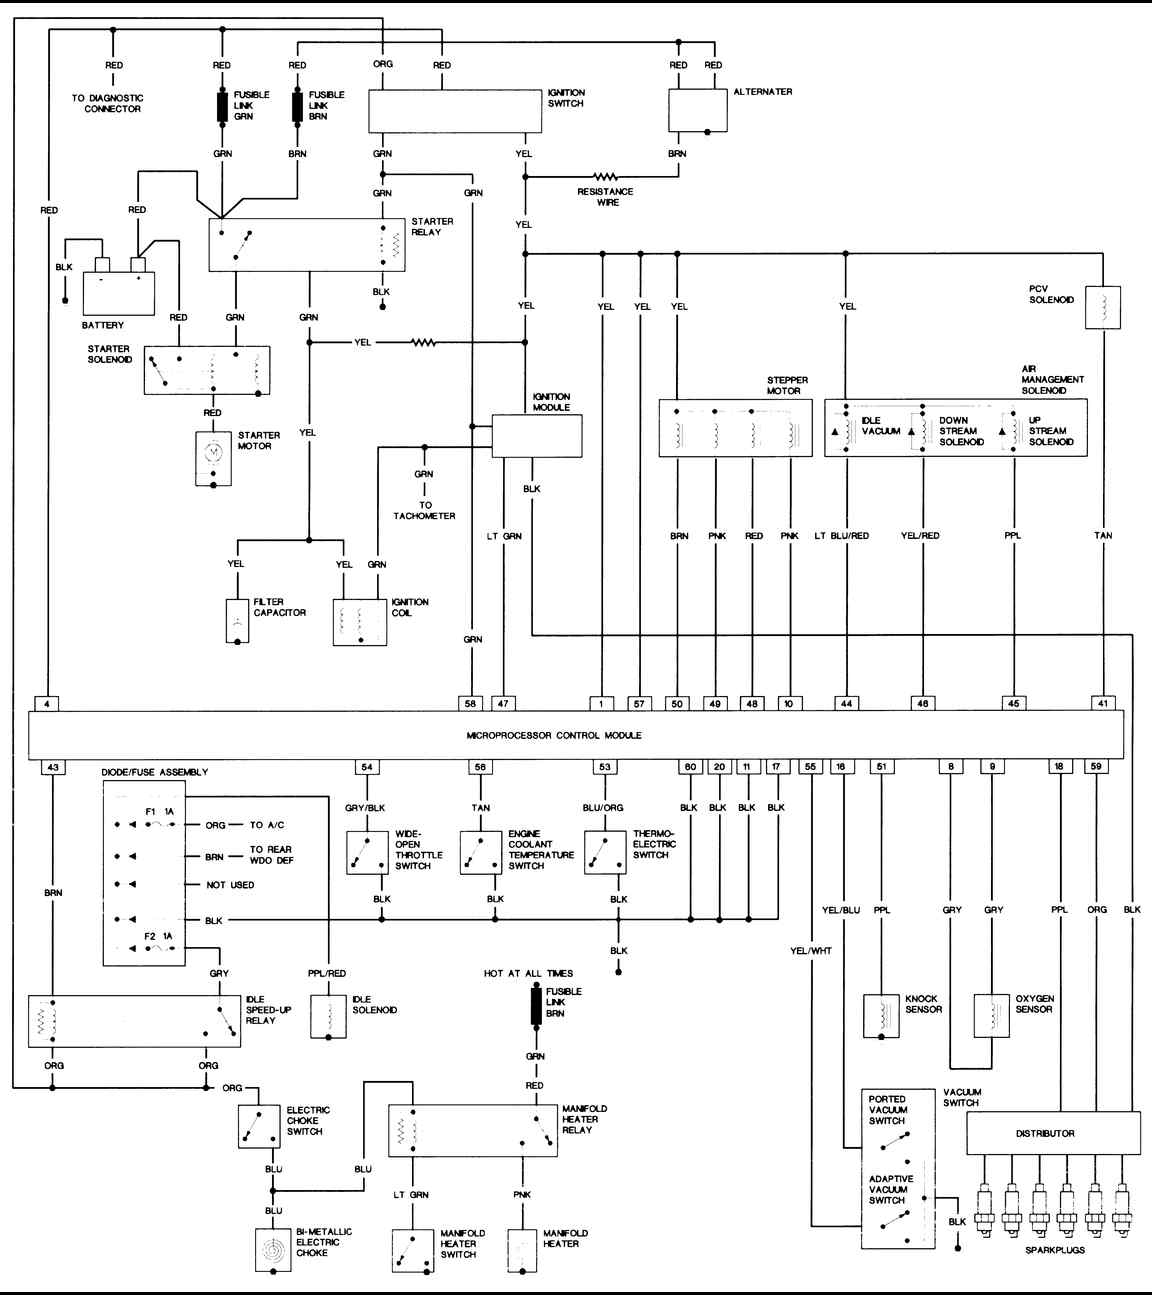 1988 Jeep Wrangler Radio Wiring Diagram | Wiring Diagram Jeep Yj Radio Wiring Diagram on jeep compass radio wiring diagram, 1988 jeep yj wiring diagram, ford crown victoria radio wiring diagram, jeep yj water pump, acura tl radio wiring diagram, 89 jeep yj wiring diagram, jeep yj front wheel bearings, jeep yj alternator wiring diagram, 1994 jeep yj wiring diagram, pontiac grand am radio wiring diagram, gmc envoy radio wiring diagram, pontiac sunbird radio wiring diagram, 1987 jeep yj wiring diagram, chrysler crossfire radio wiring diagram, ford tempo radio wiring diagram, 1988 jeep ignition wiring diagram, bmw z3 radio wiring diagram, bmw 525i radio wiring diagram, gmc vandura radio wiring diagram, jeep yj electrical problems,